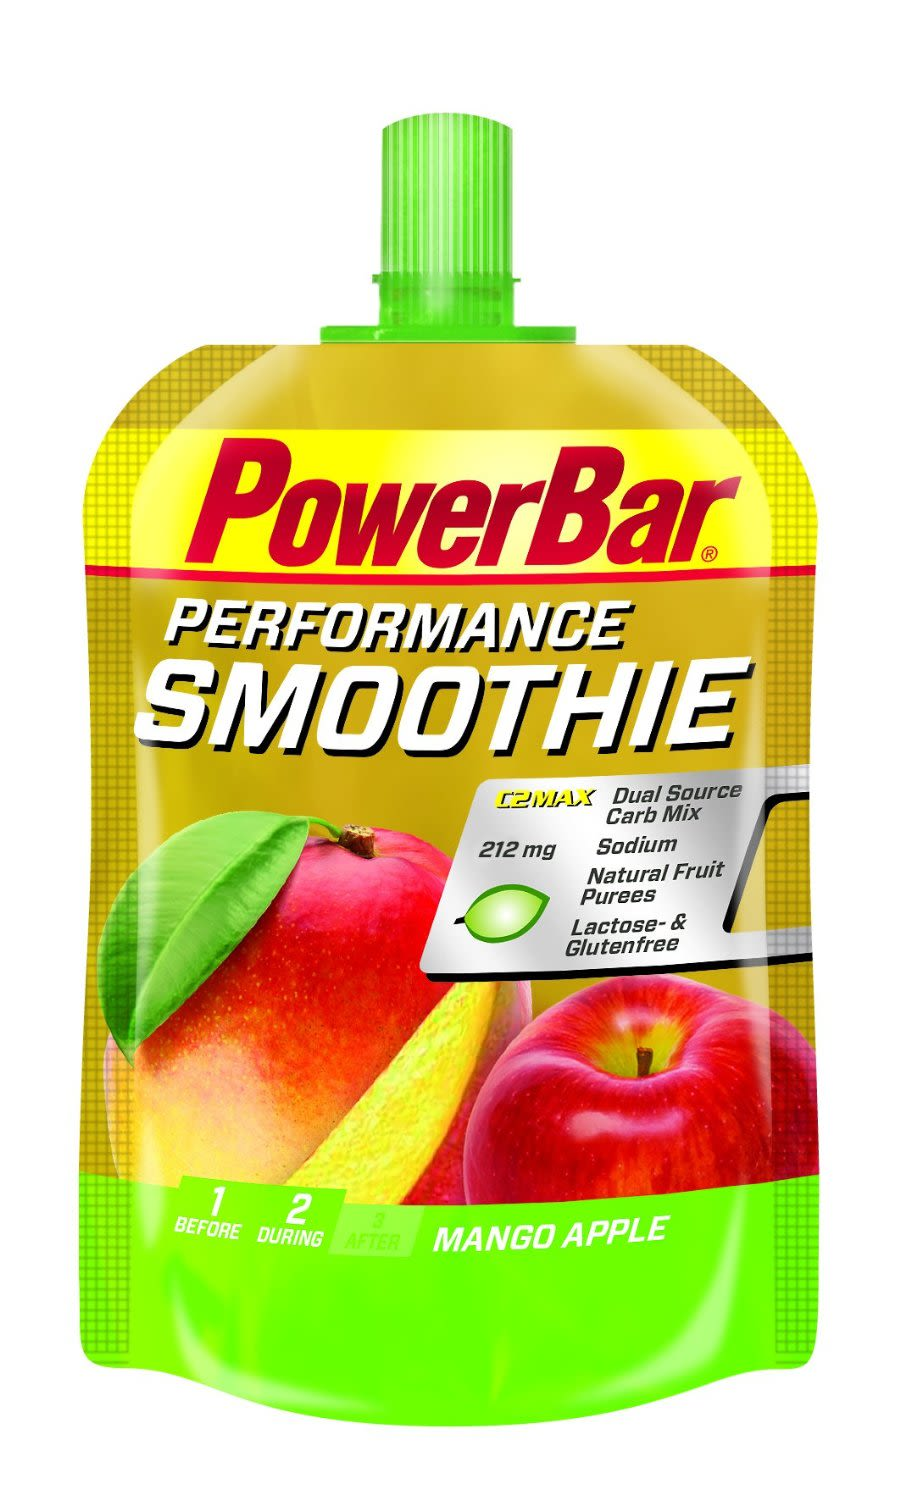 Performance Smoothie - 16x90g - Apfel-Mango